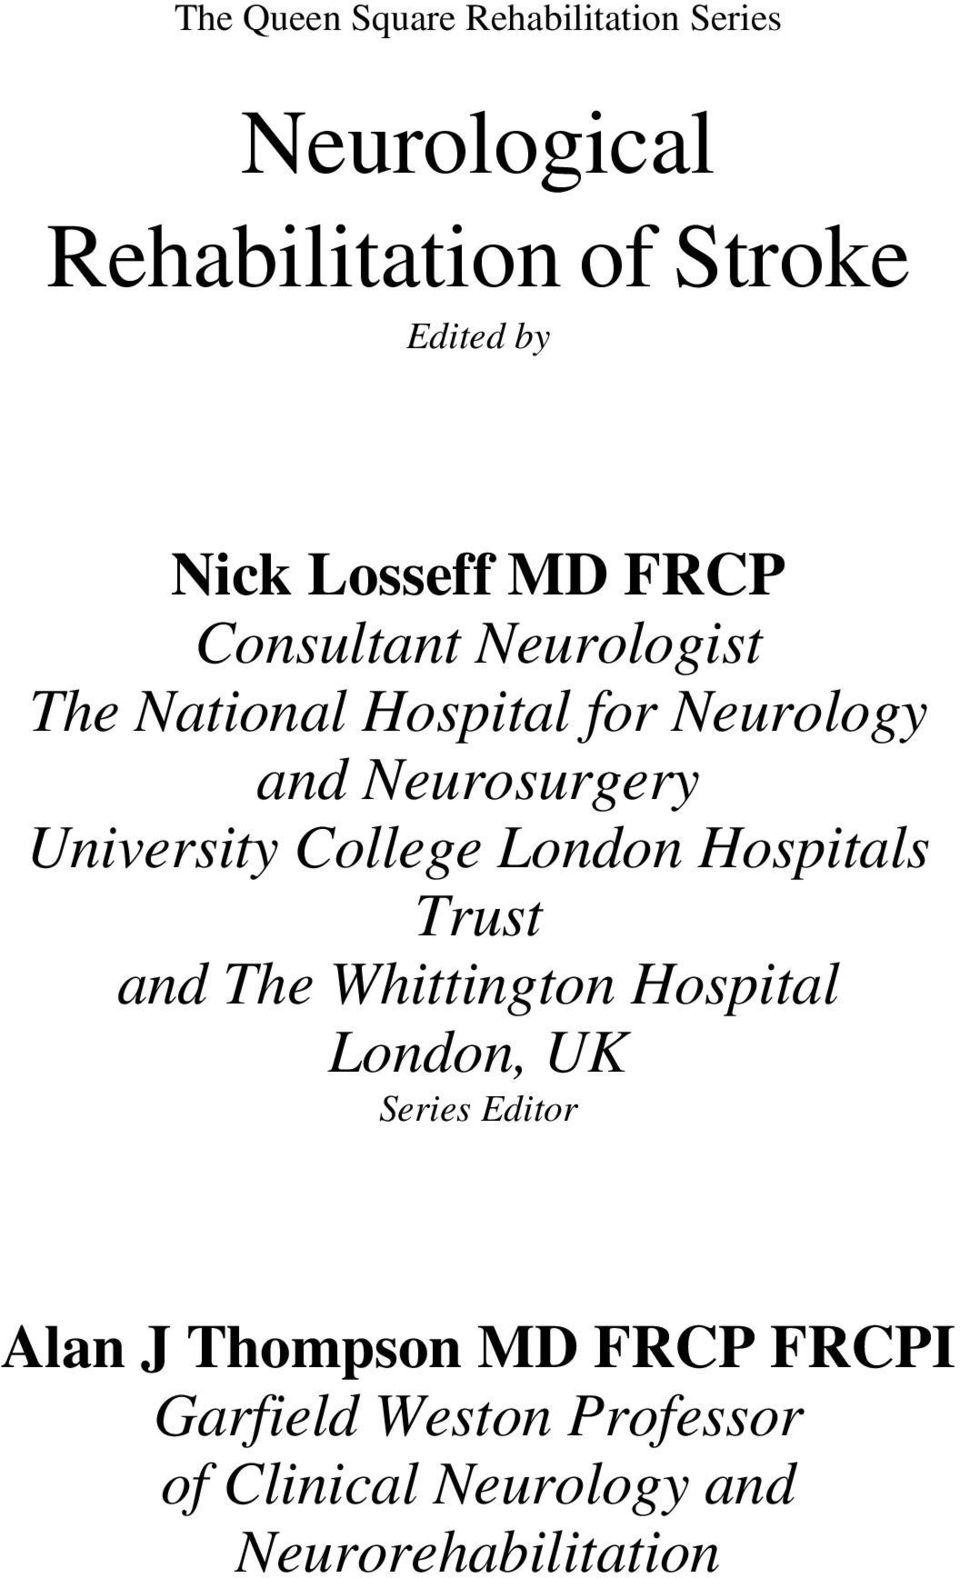 University College London Hospitals Trust and The Whittington Hospital London, UK Series Editor